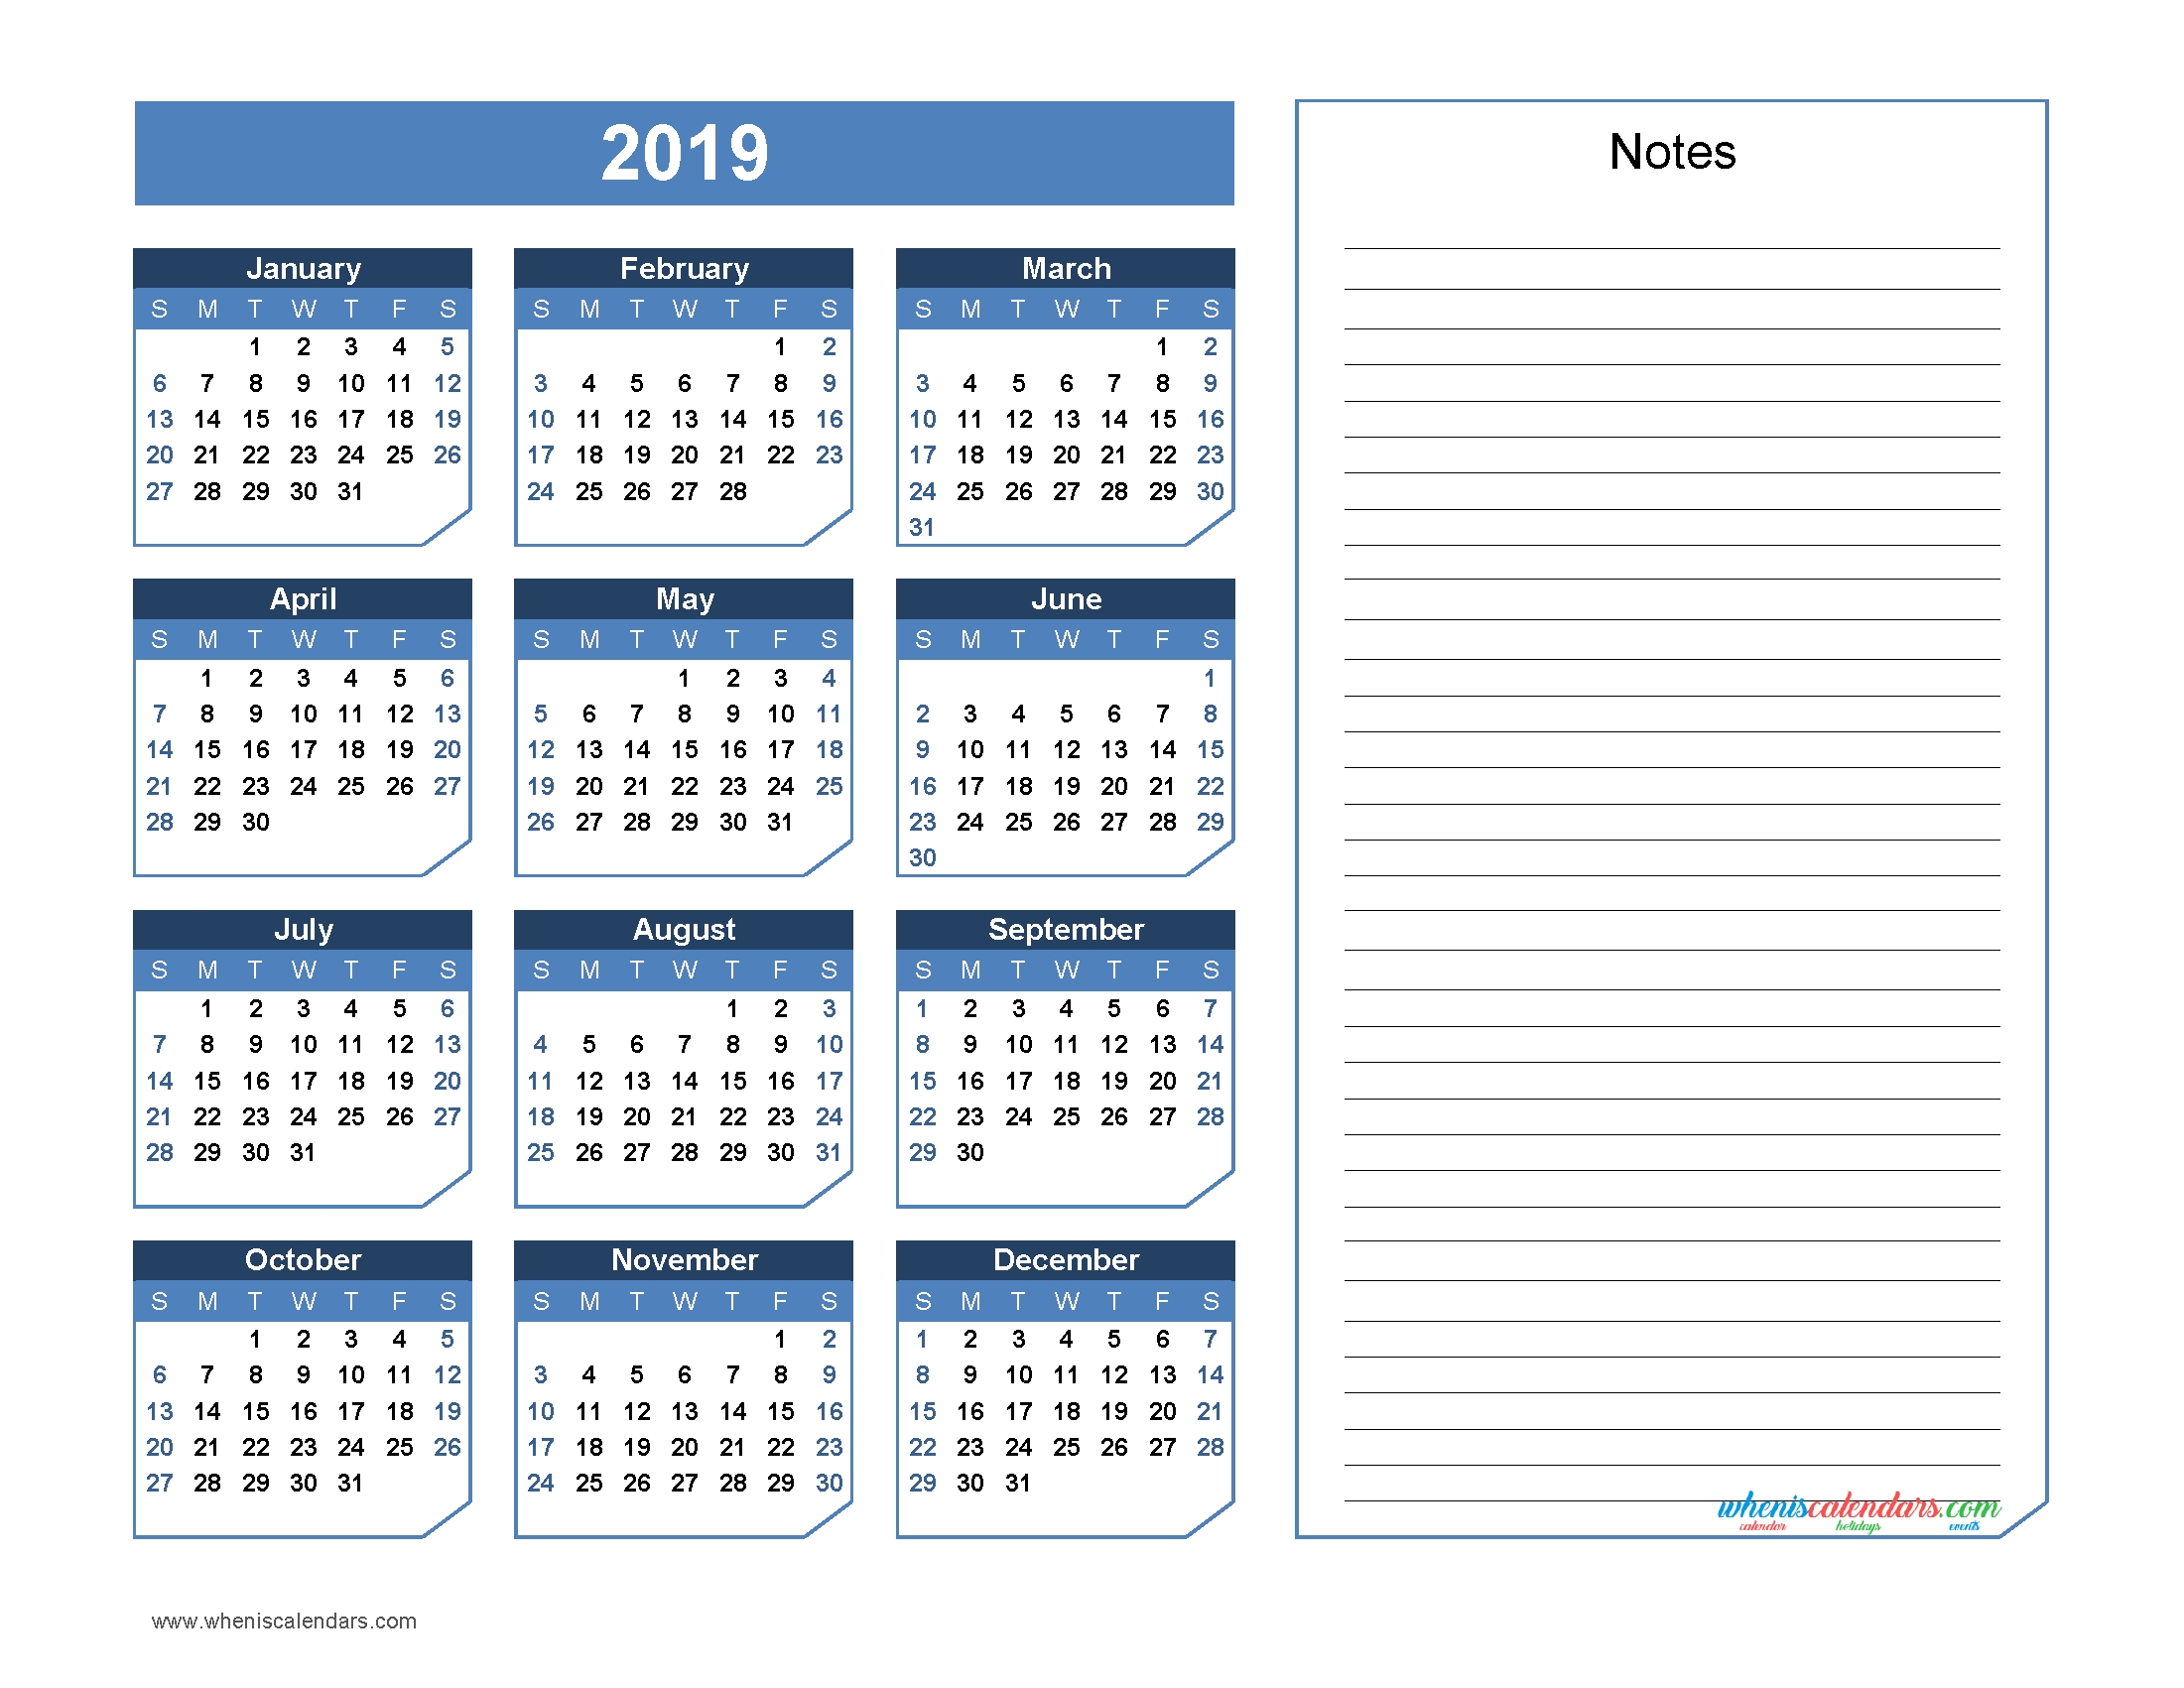 2019 Yearly Calendar With Notes Printable Chamfer Collection Office